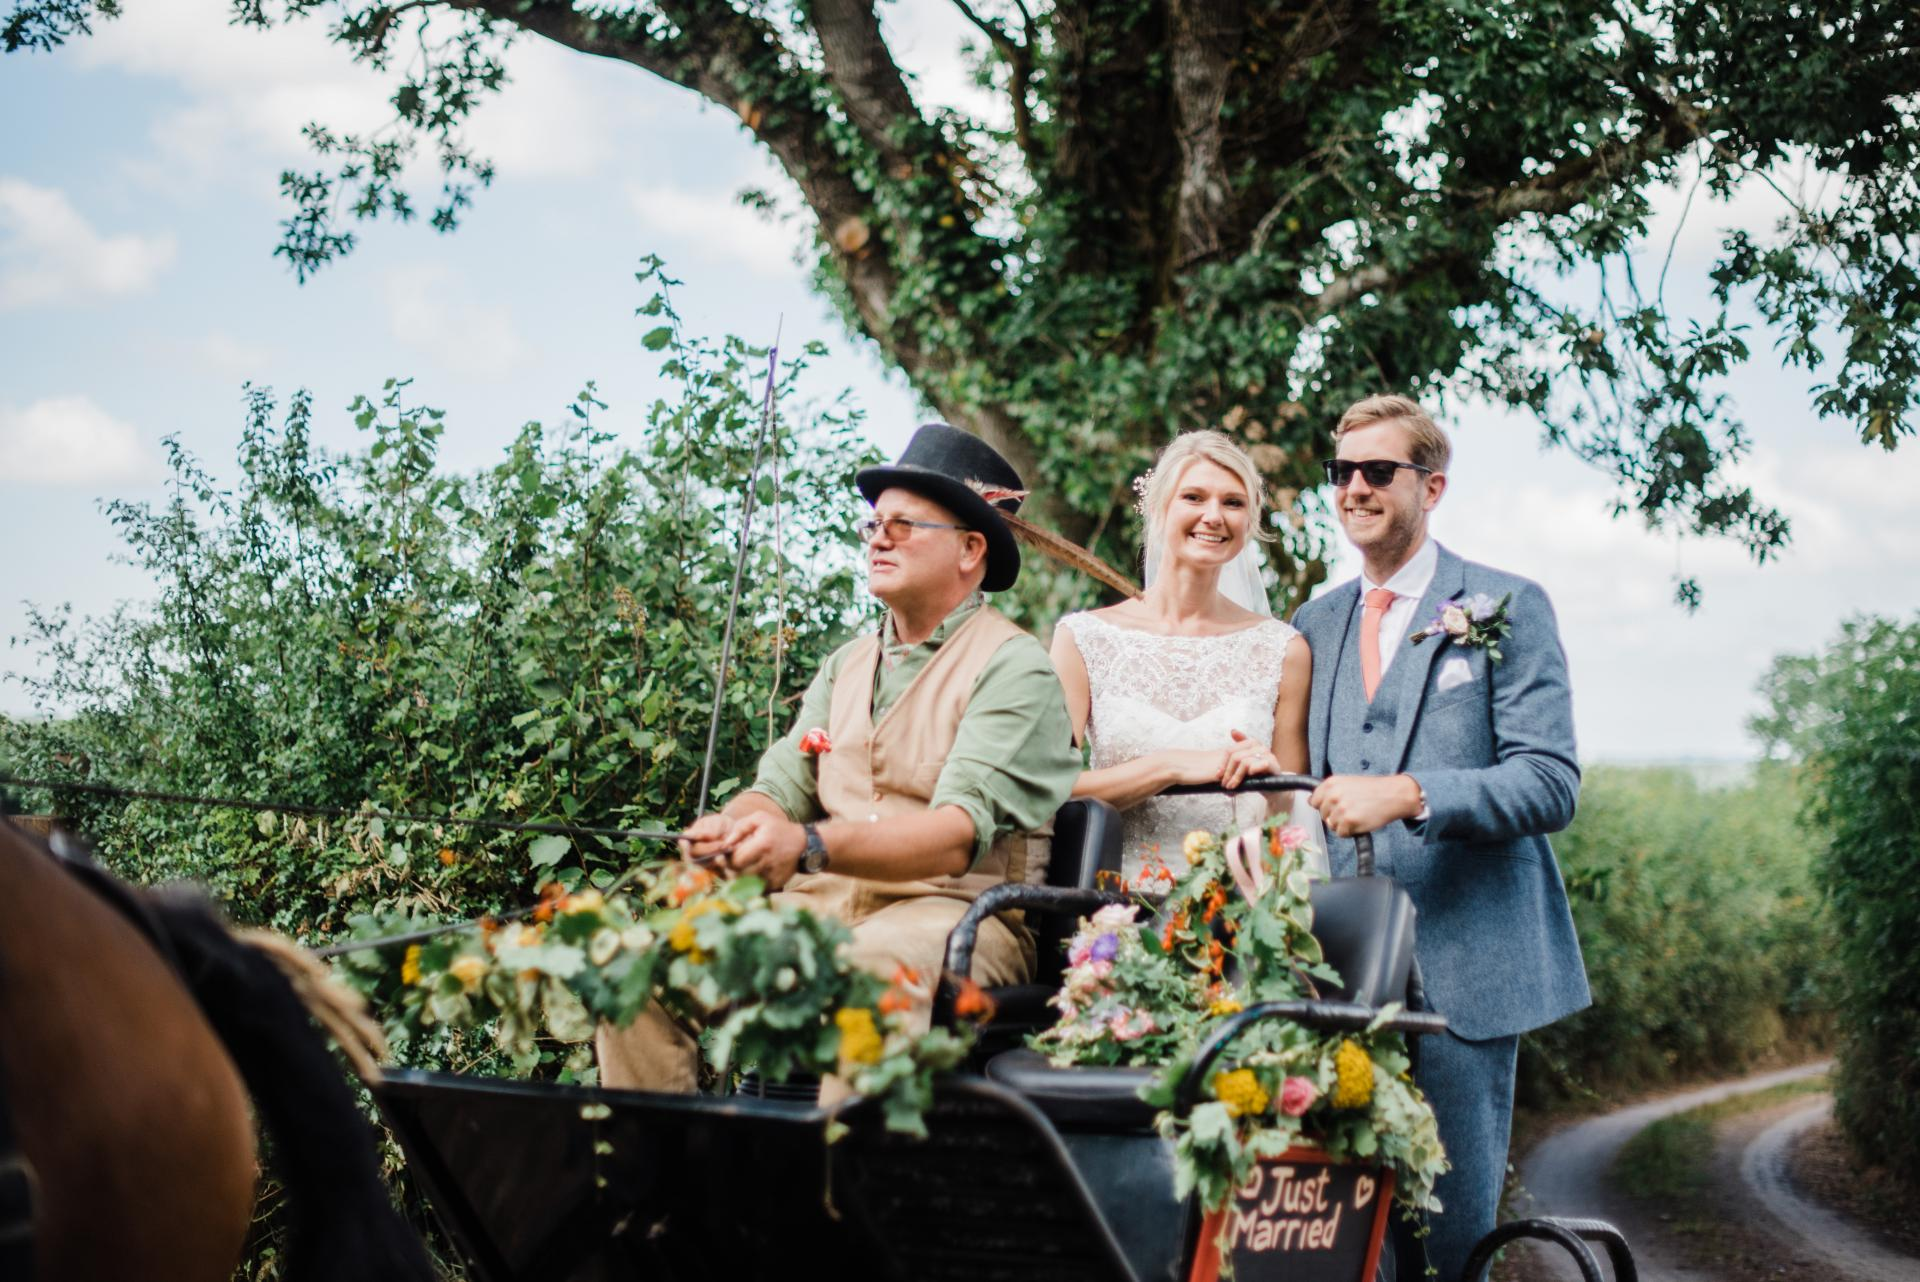 Phoebe & Simon| Grace and Honour Weddings Exeter